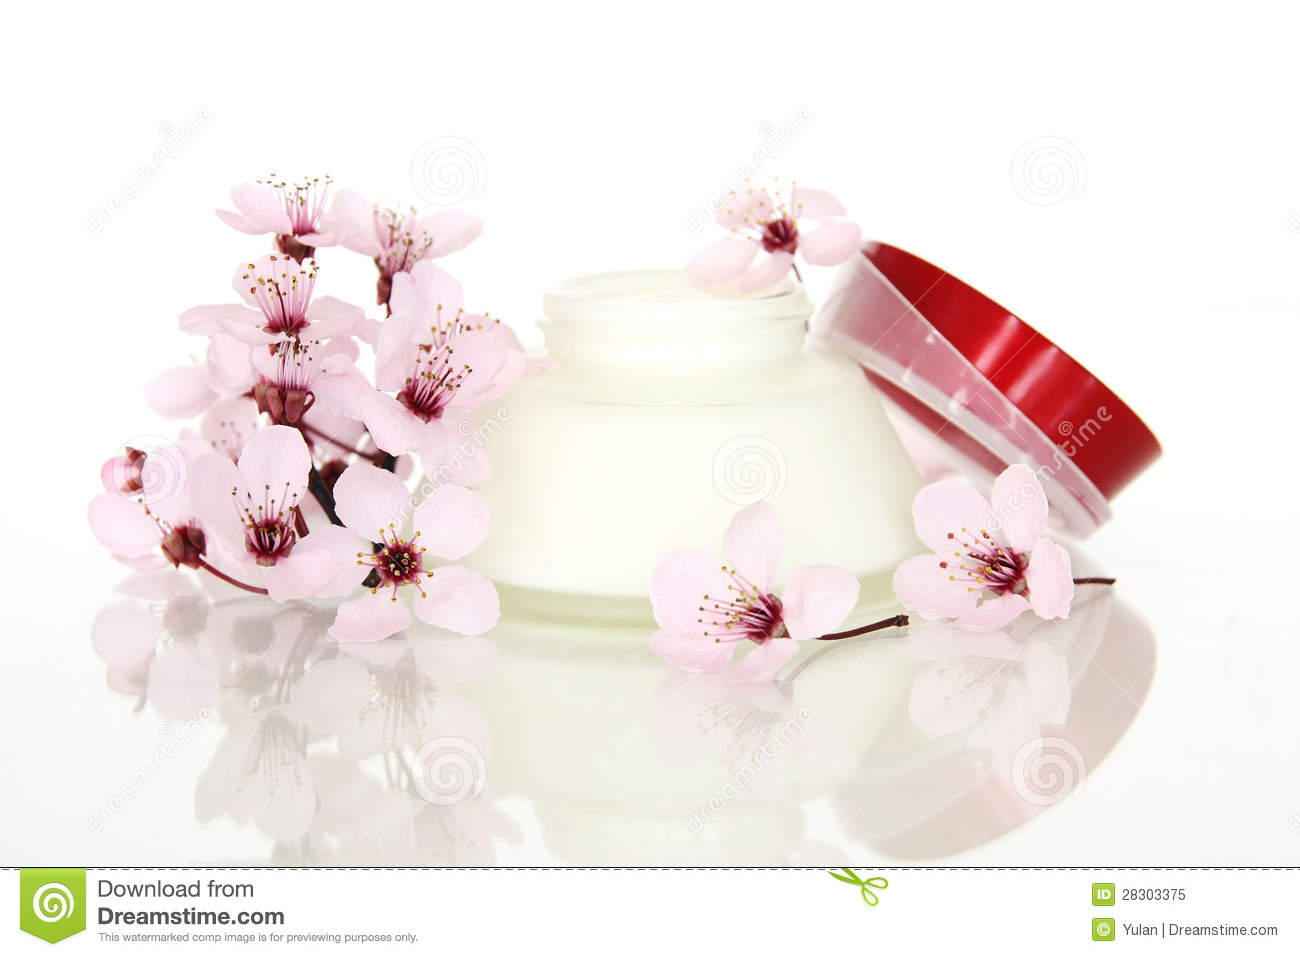 Cosmetics And Sakura Flower Royalty Free Stock Image